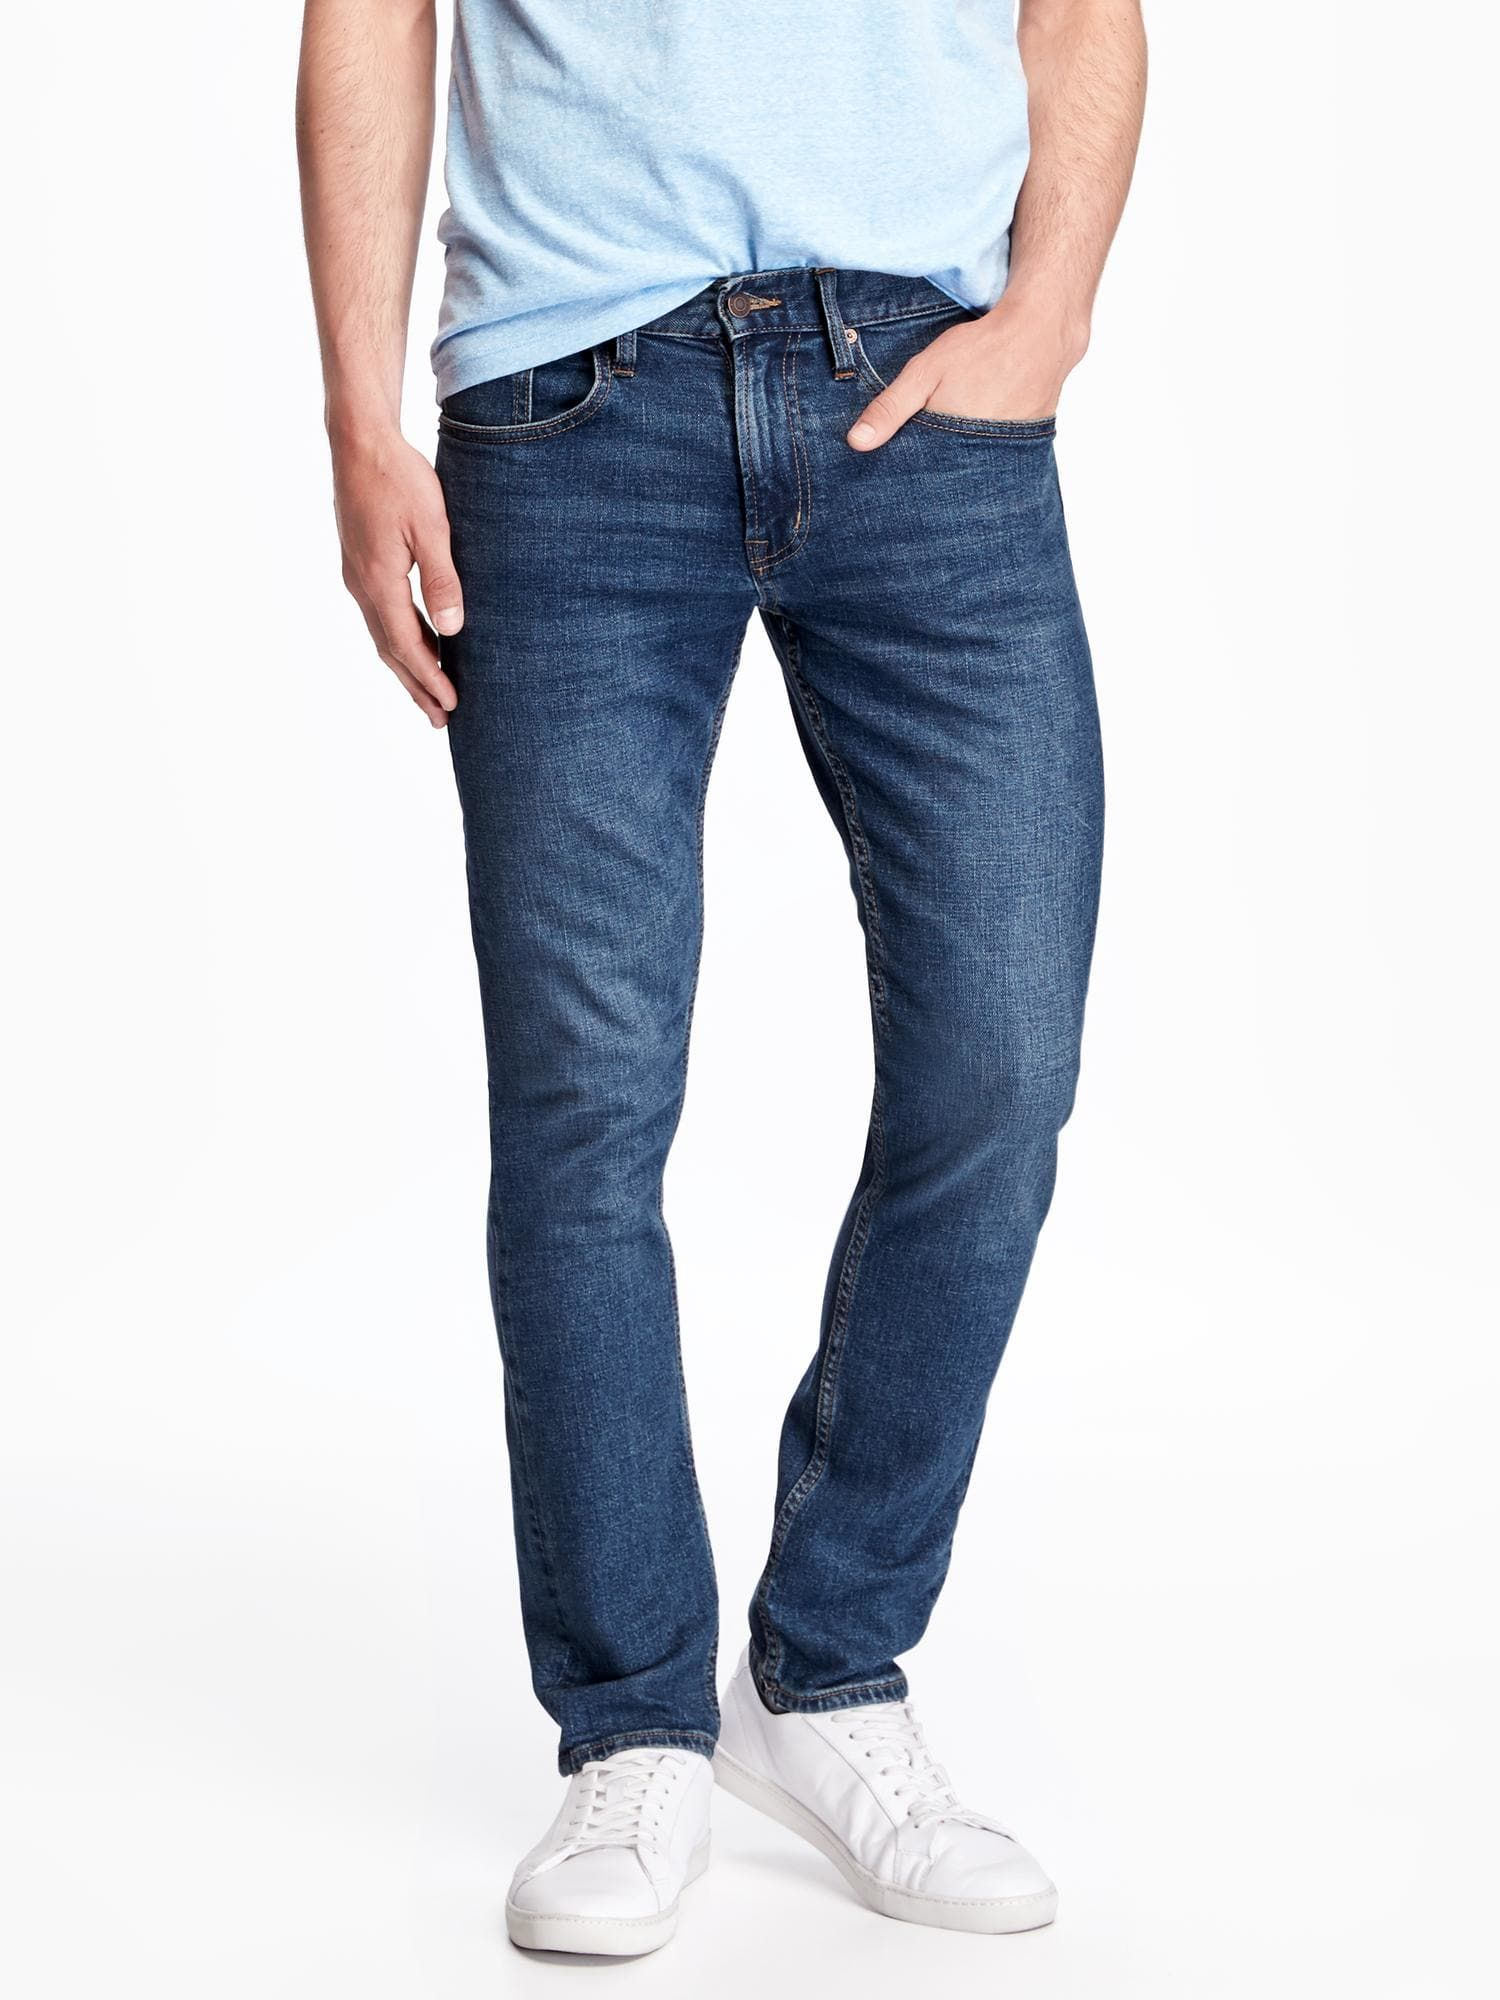 84c25580caa569 OLD NAVY - 33 x 30 Regular Skinny Jeans. (On the wall in the stores.)